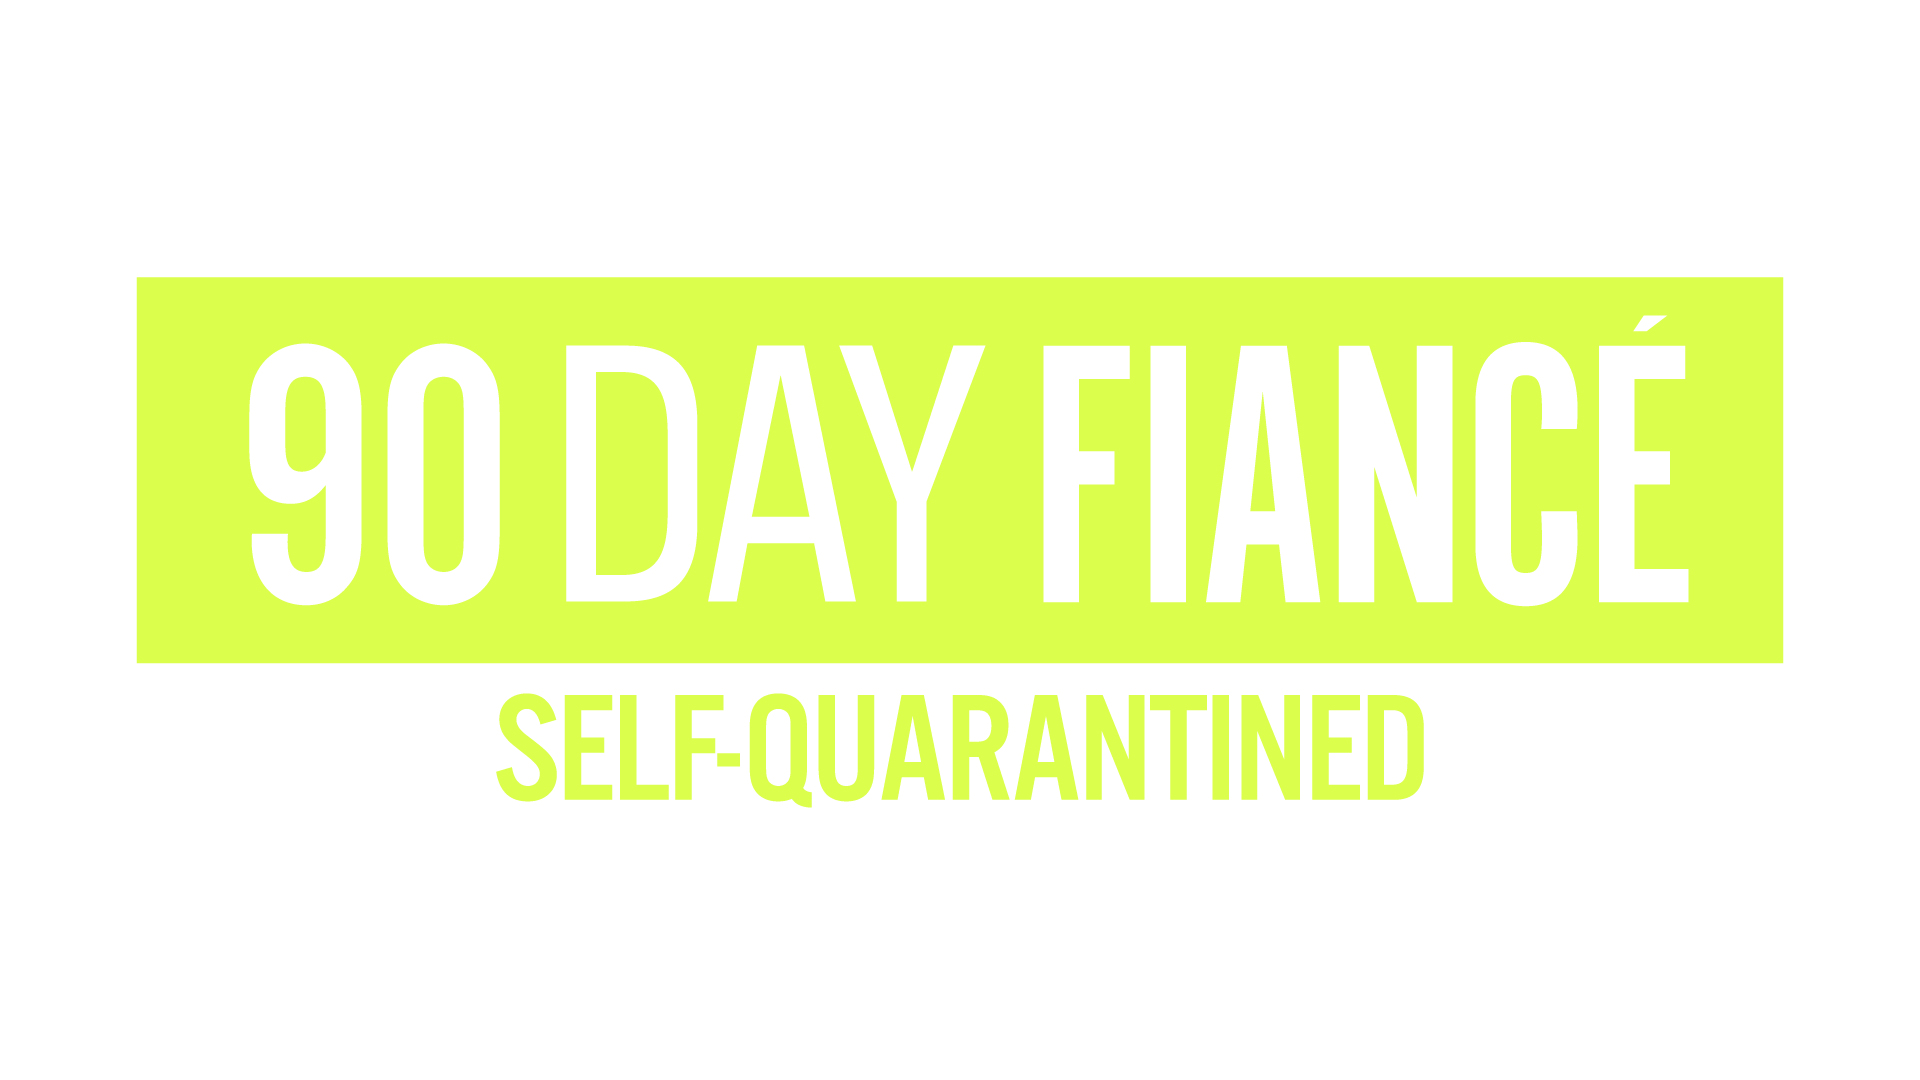 90 Day Fiance - Self Quarantined